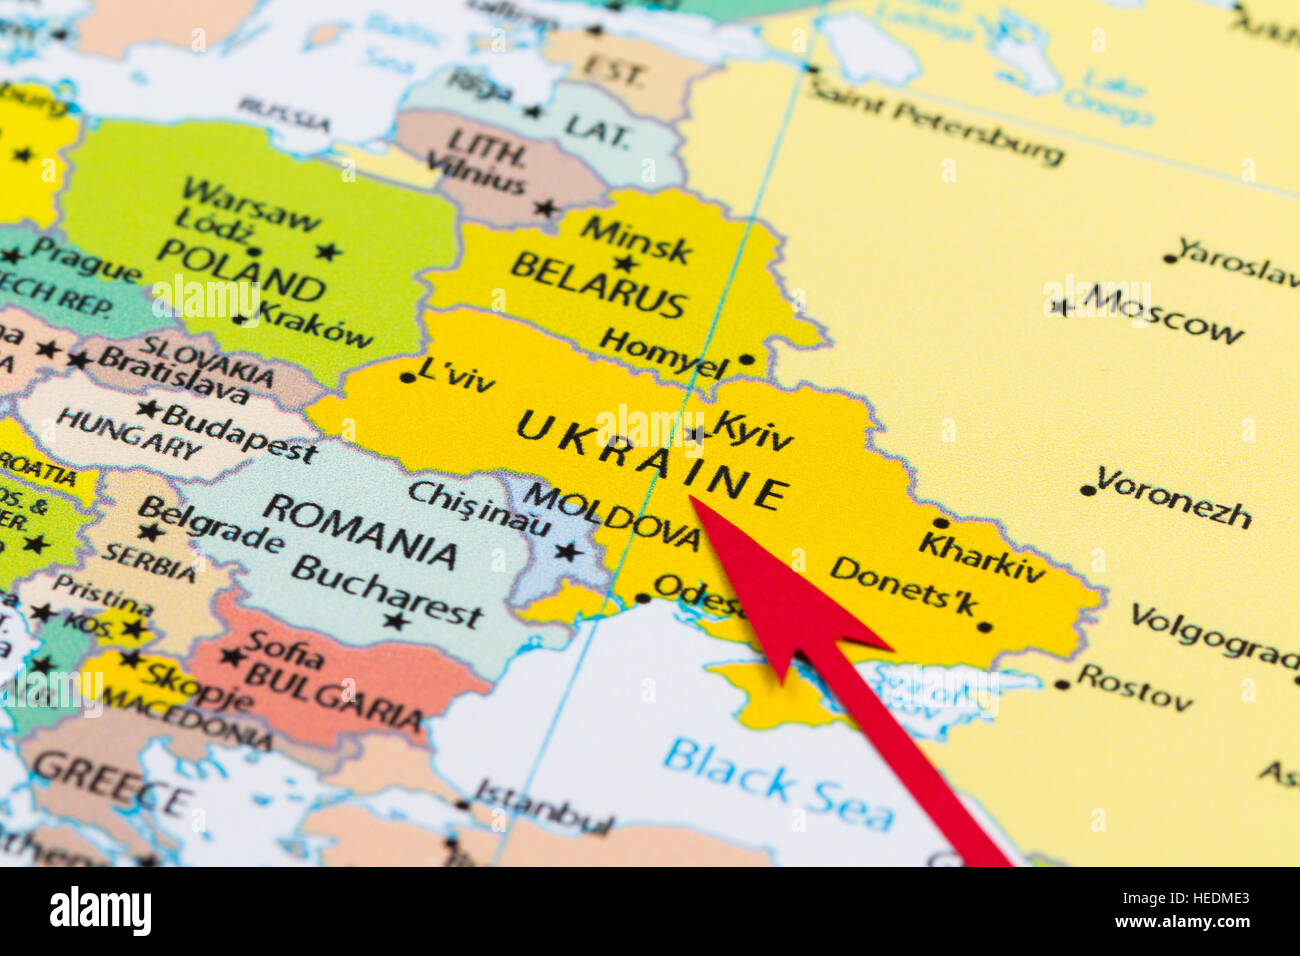 Red Arrow Pointing Ukraine On The Map Of Europe Continent – Map of Europe Continent